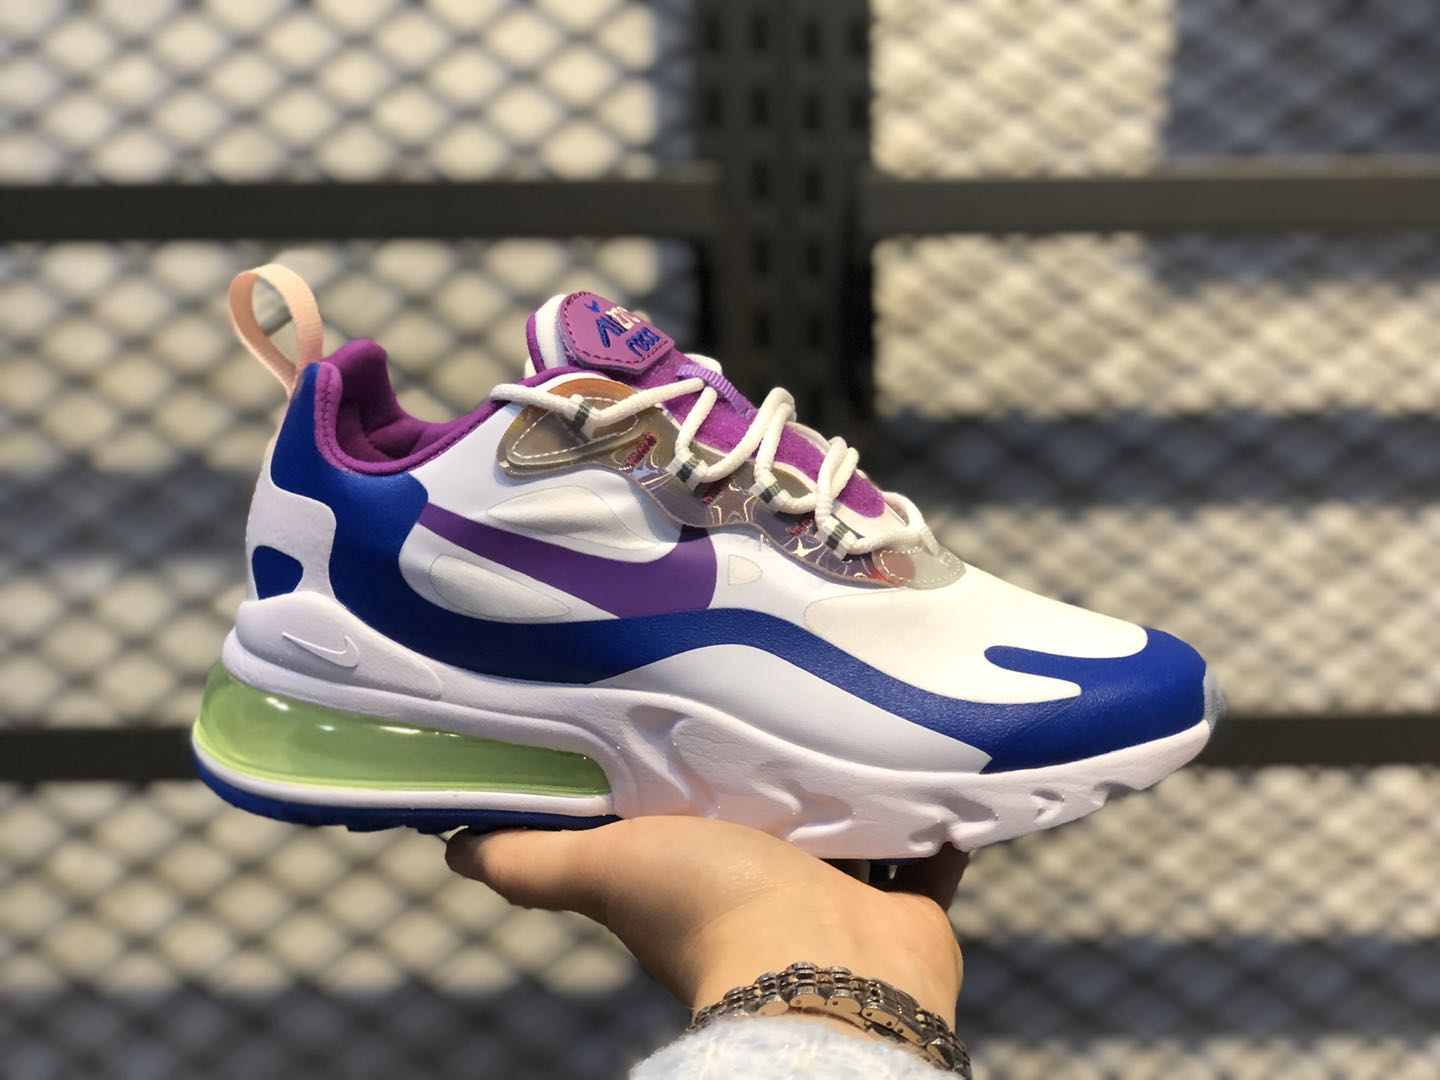 Nike Air Max 270 White/Washed Coral-Hyper Blue-Purple Nebula CW0630-100